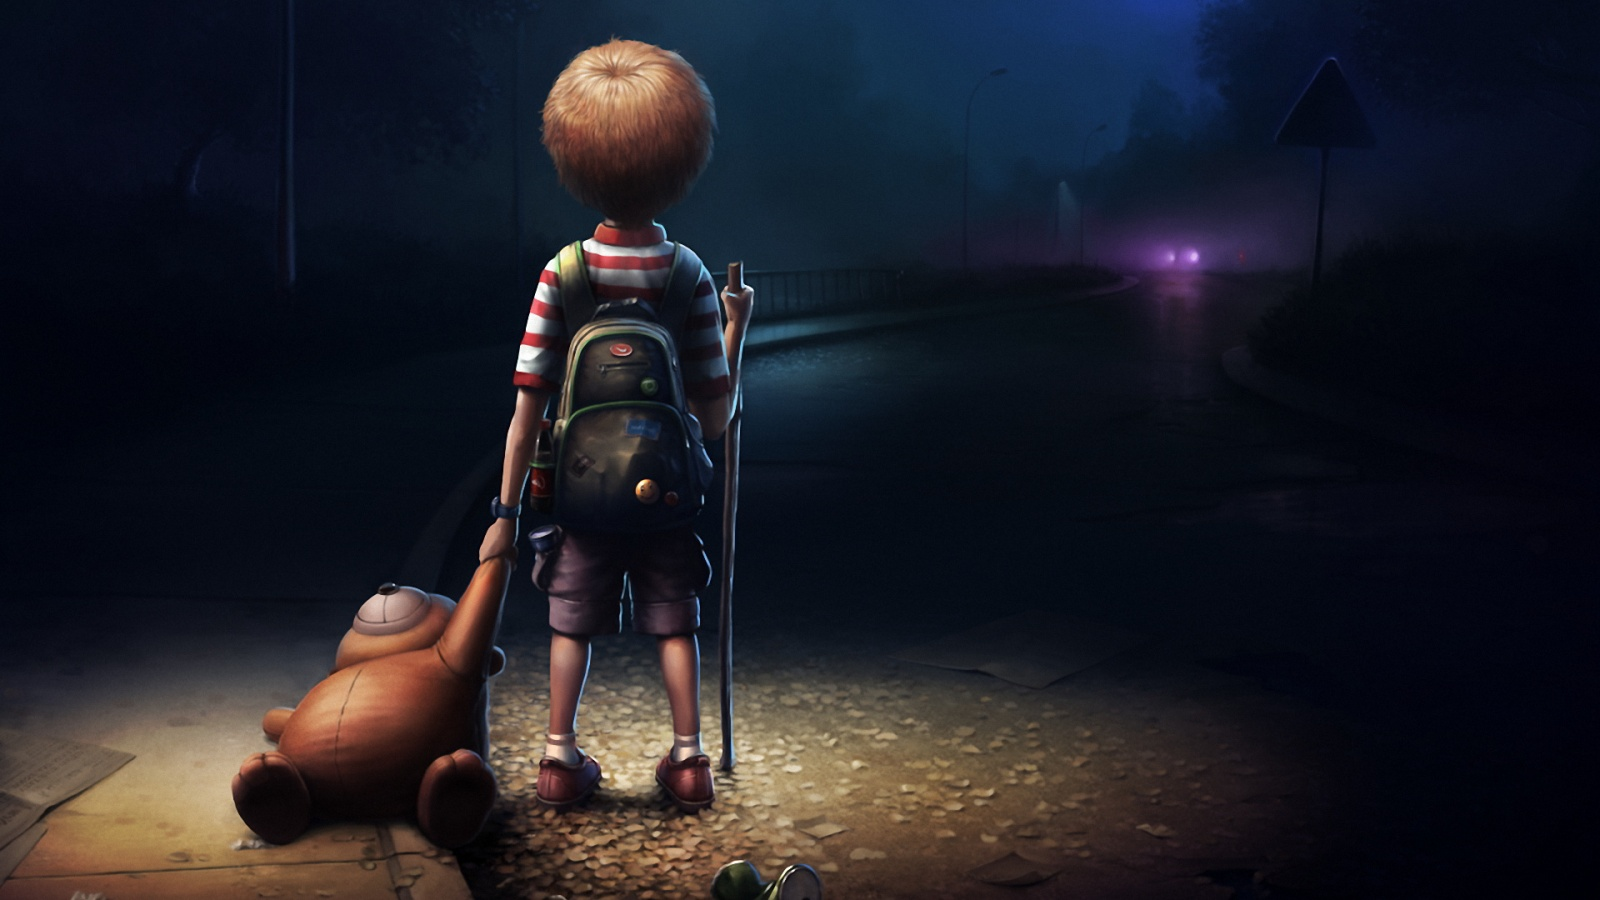 Leave Alone Kid Style HD Wallpaper   StylishHDWallpapers 1600x900